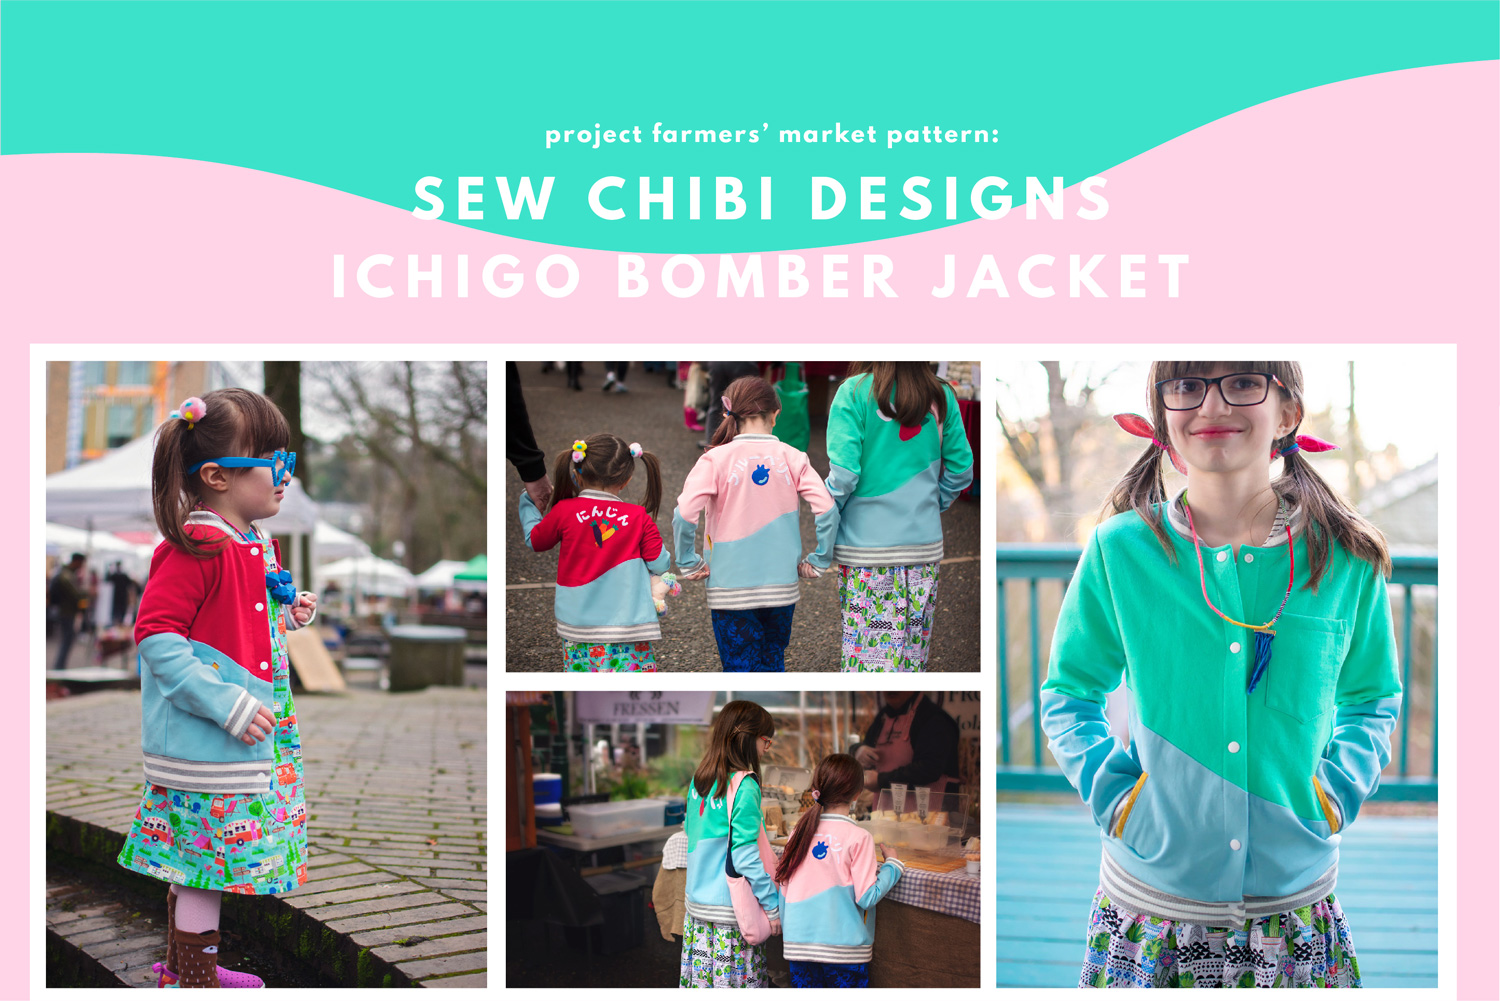 🍓The Ichigo Bomber Jacket PDF Pattern by Sew Chibi Designs. A lightweight, color blocked, knit coat for all kids: boys and girls, from baby to teen! Perfect for spring! $9 USD  Also snag a copy of the FREE PATTERN: the Mochi Bag for Kids and Adults. An adjustable strap, zippered chest bag (can be worn on hips too!) with a front pocket! A must-have accessory for any outing!